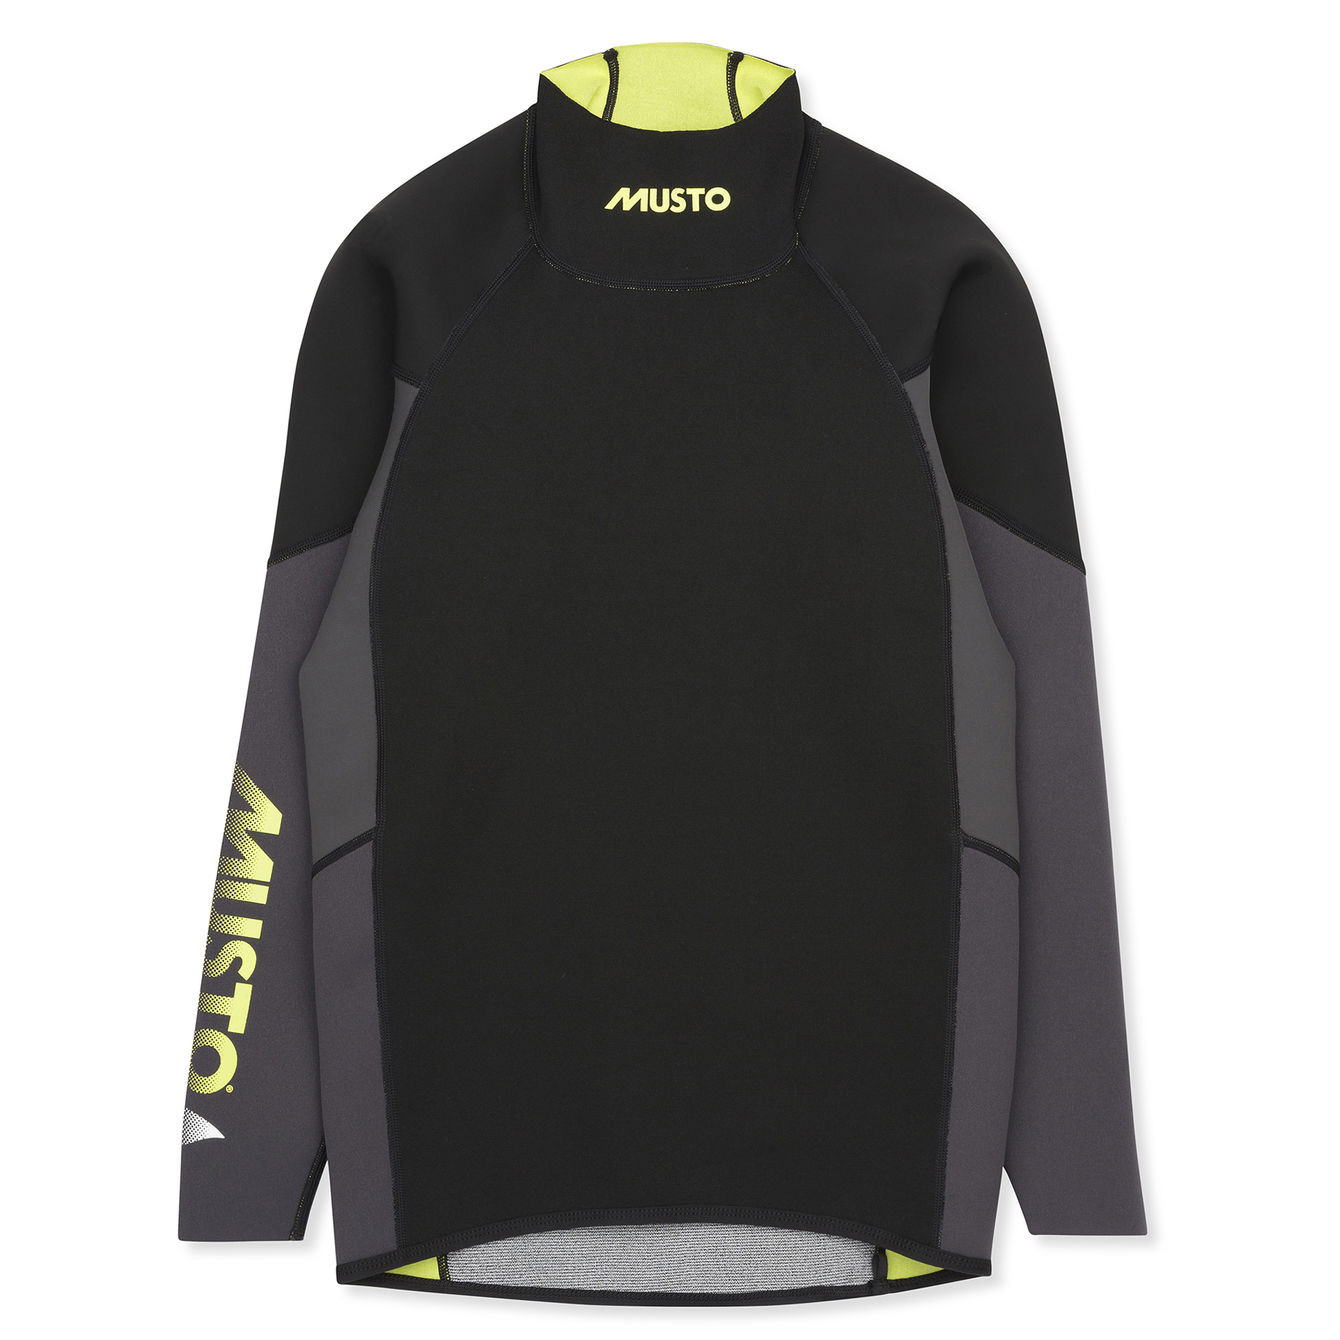 Musto Foiling Neoprene 1mm Long Sleeve Top